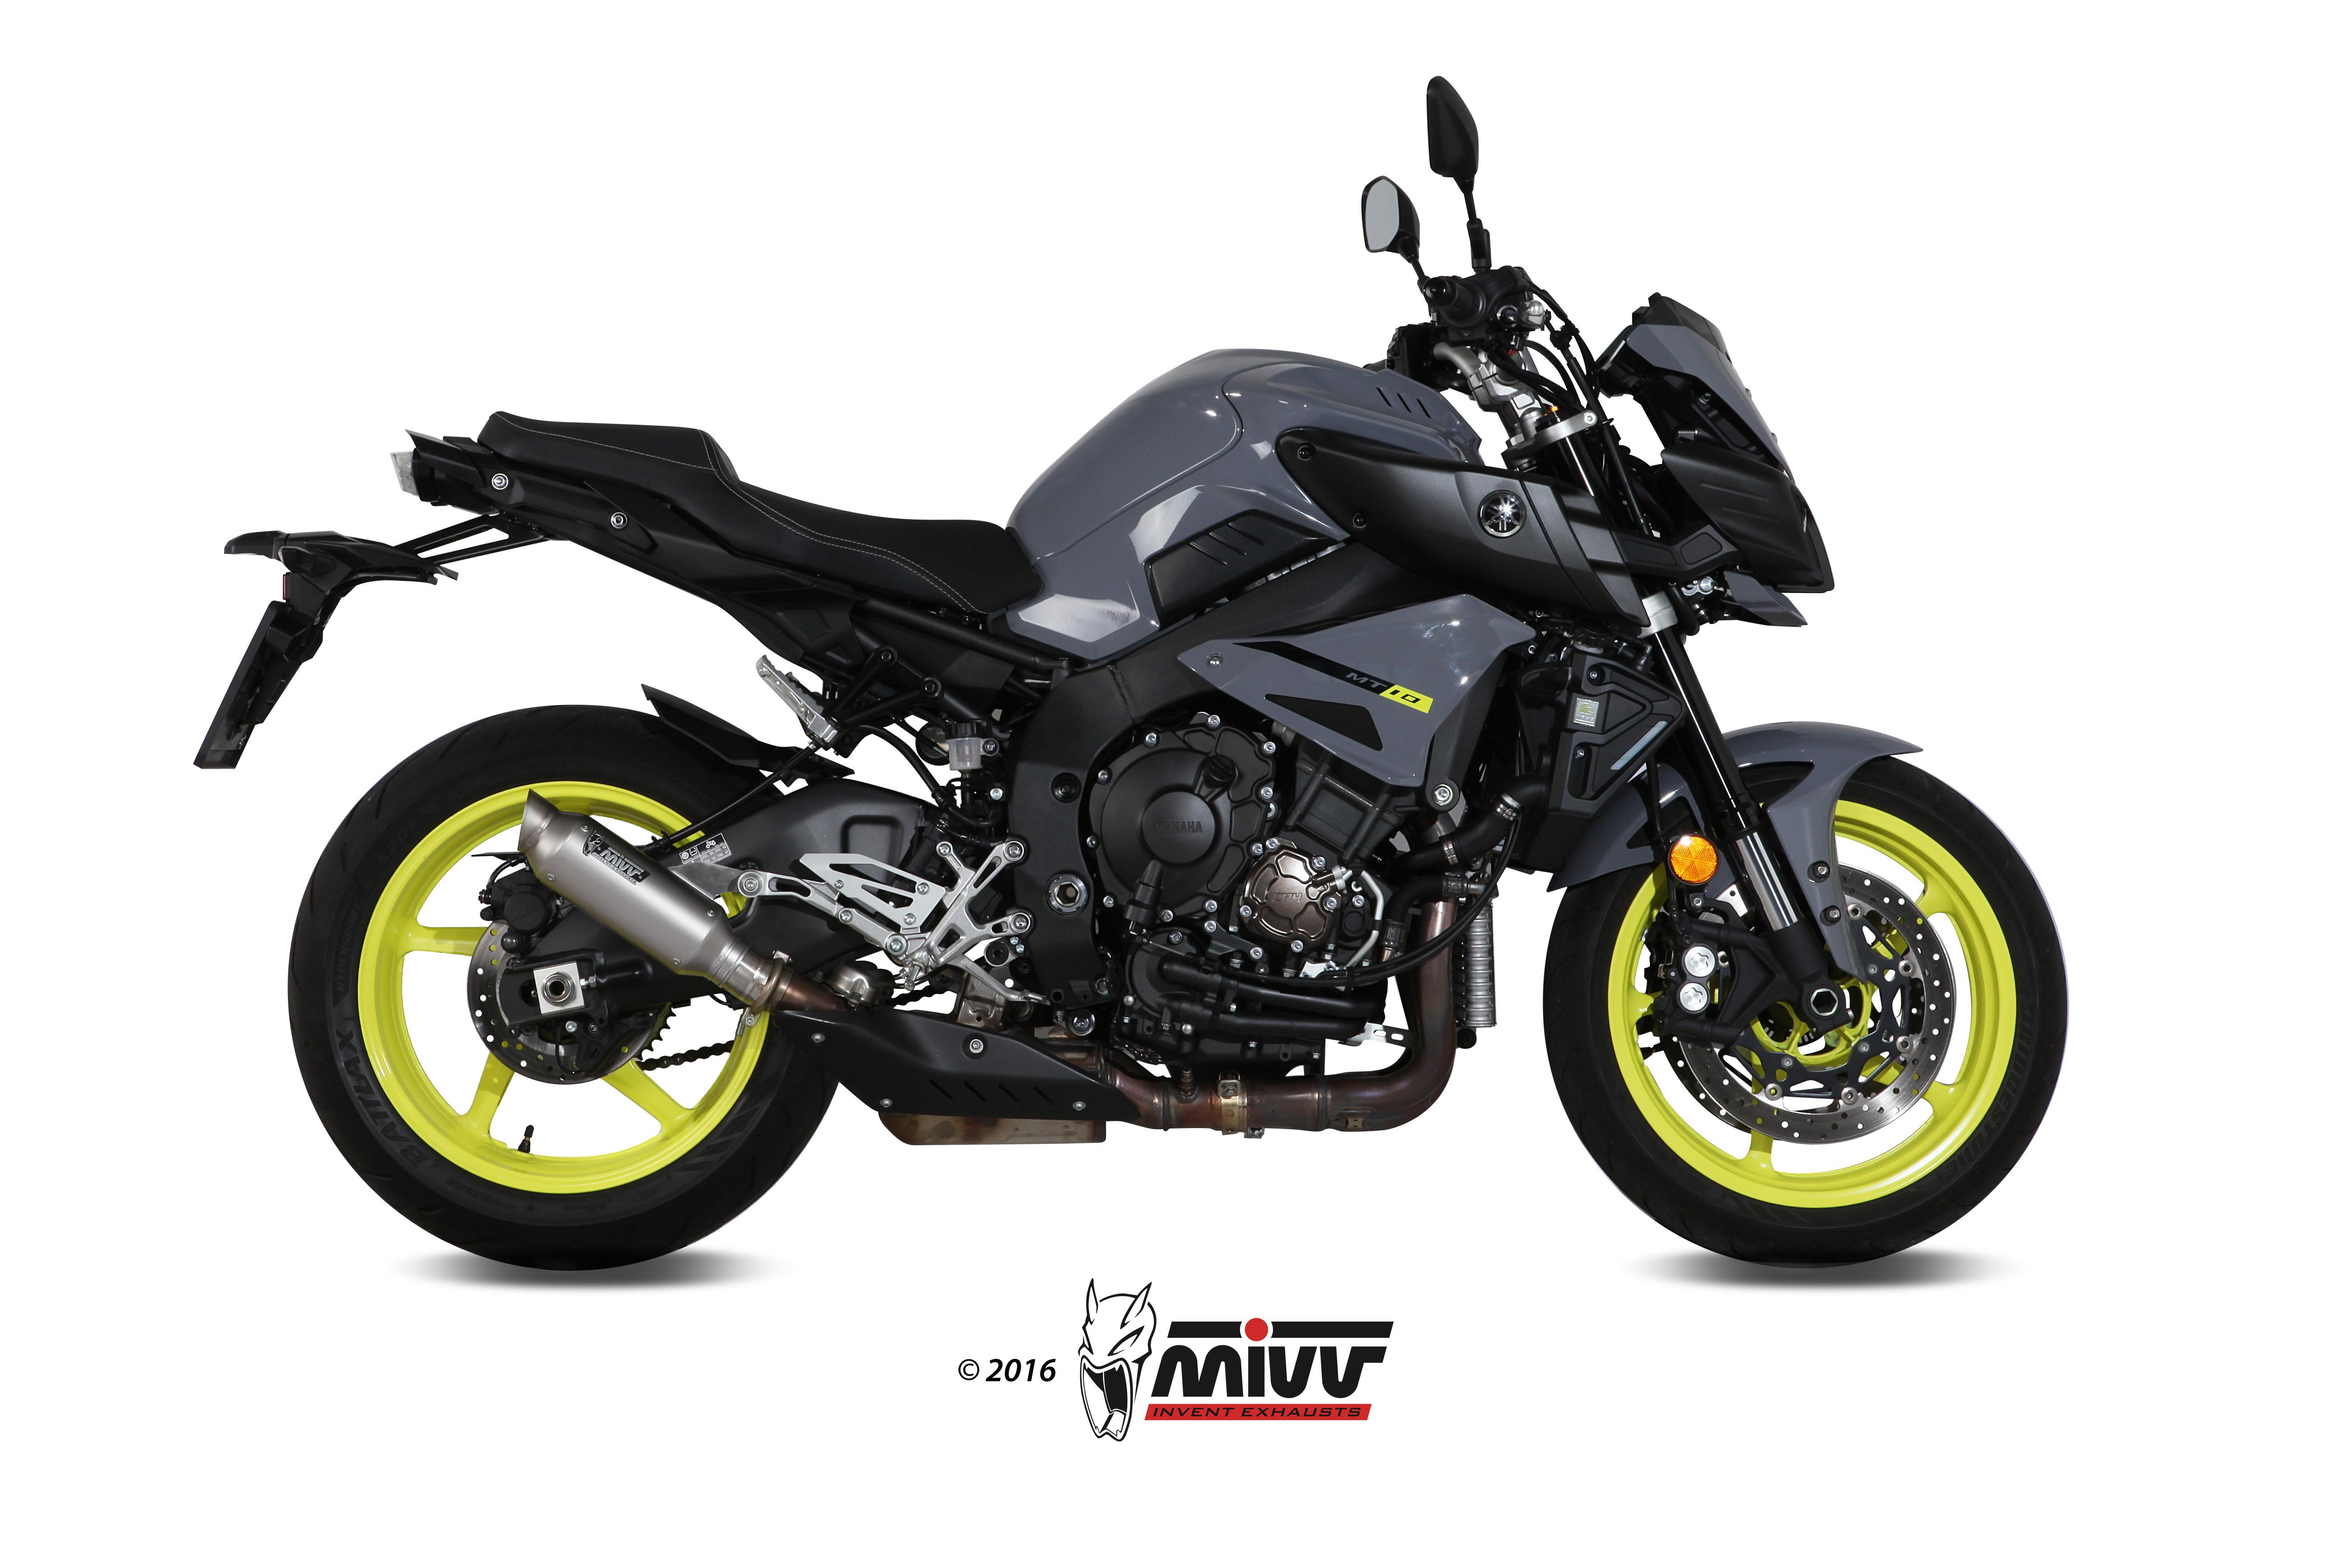 sport auspuff mivv gp m2 edelstahl yamaha mt 10 bj 2016. Black Bedroom Furniture Sets. Home Design Ideas